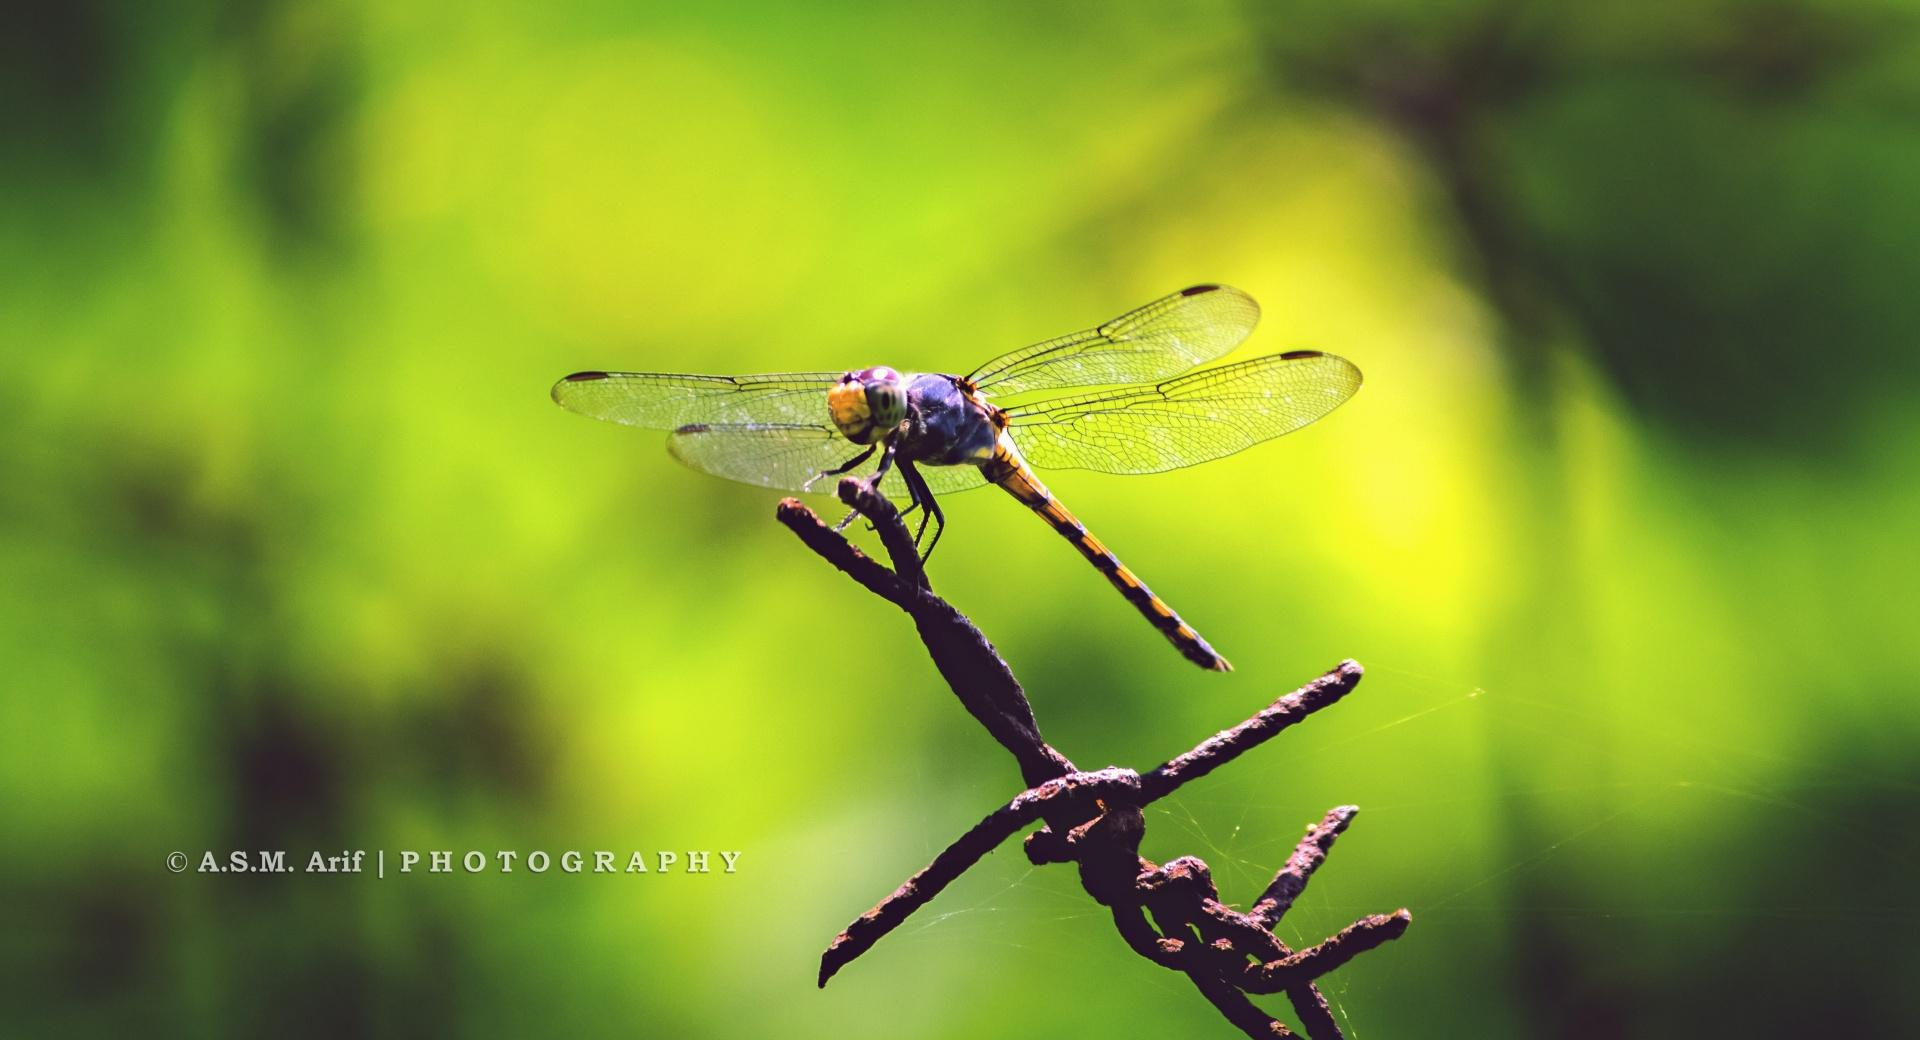 The Dragon Fly at 1280 x 960 size wallpapers HD quality